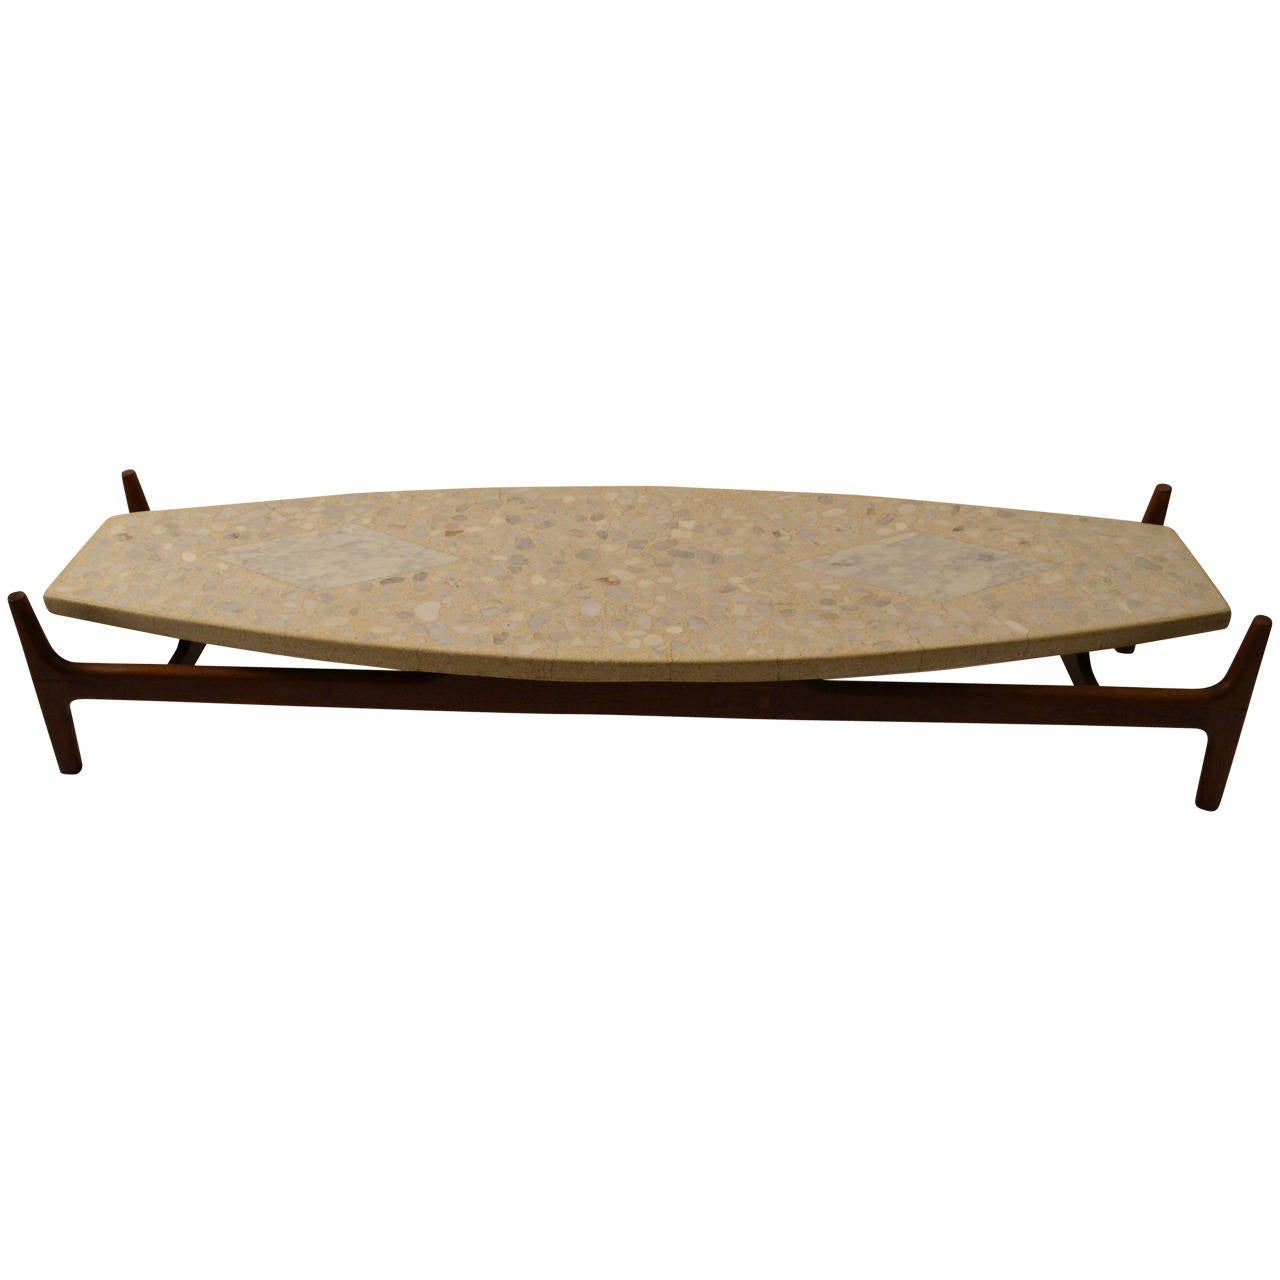 Probber Surfboard, Terrazzo-Top Coffee Or Cocktail Table